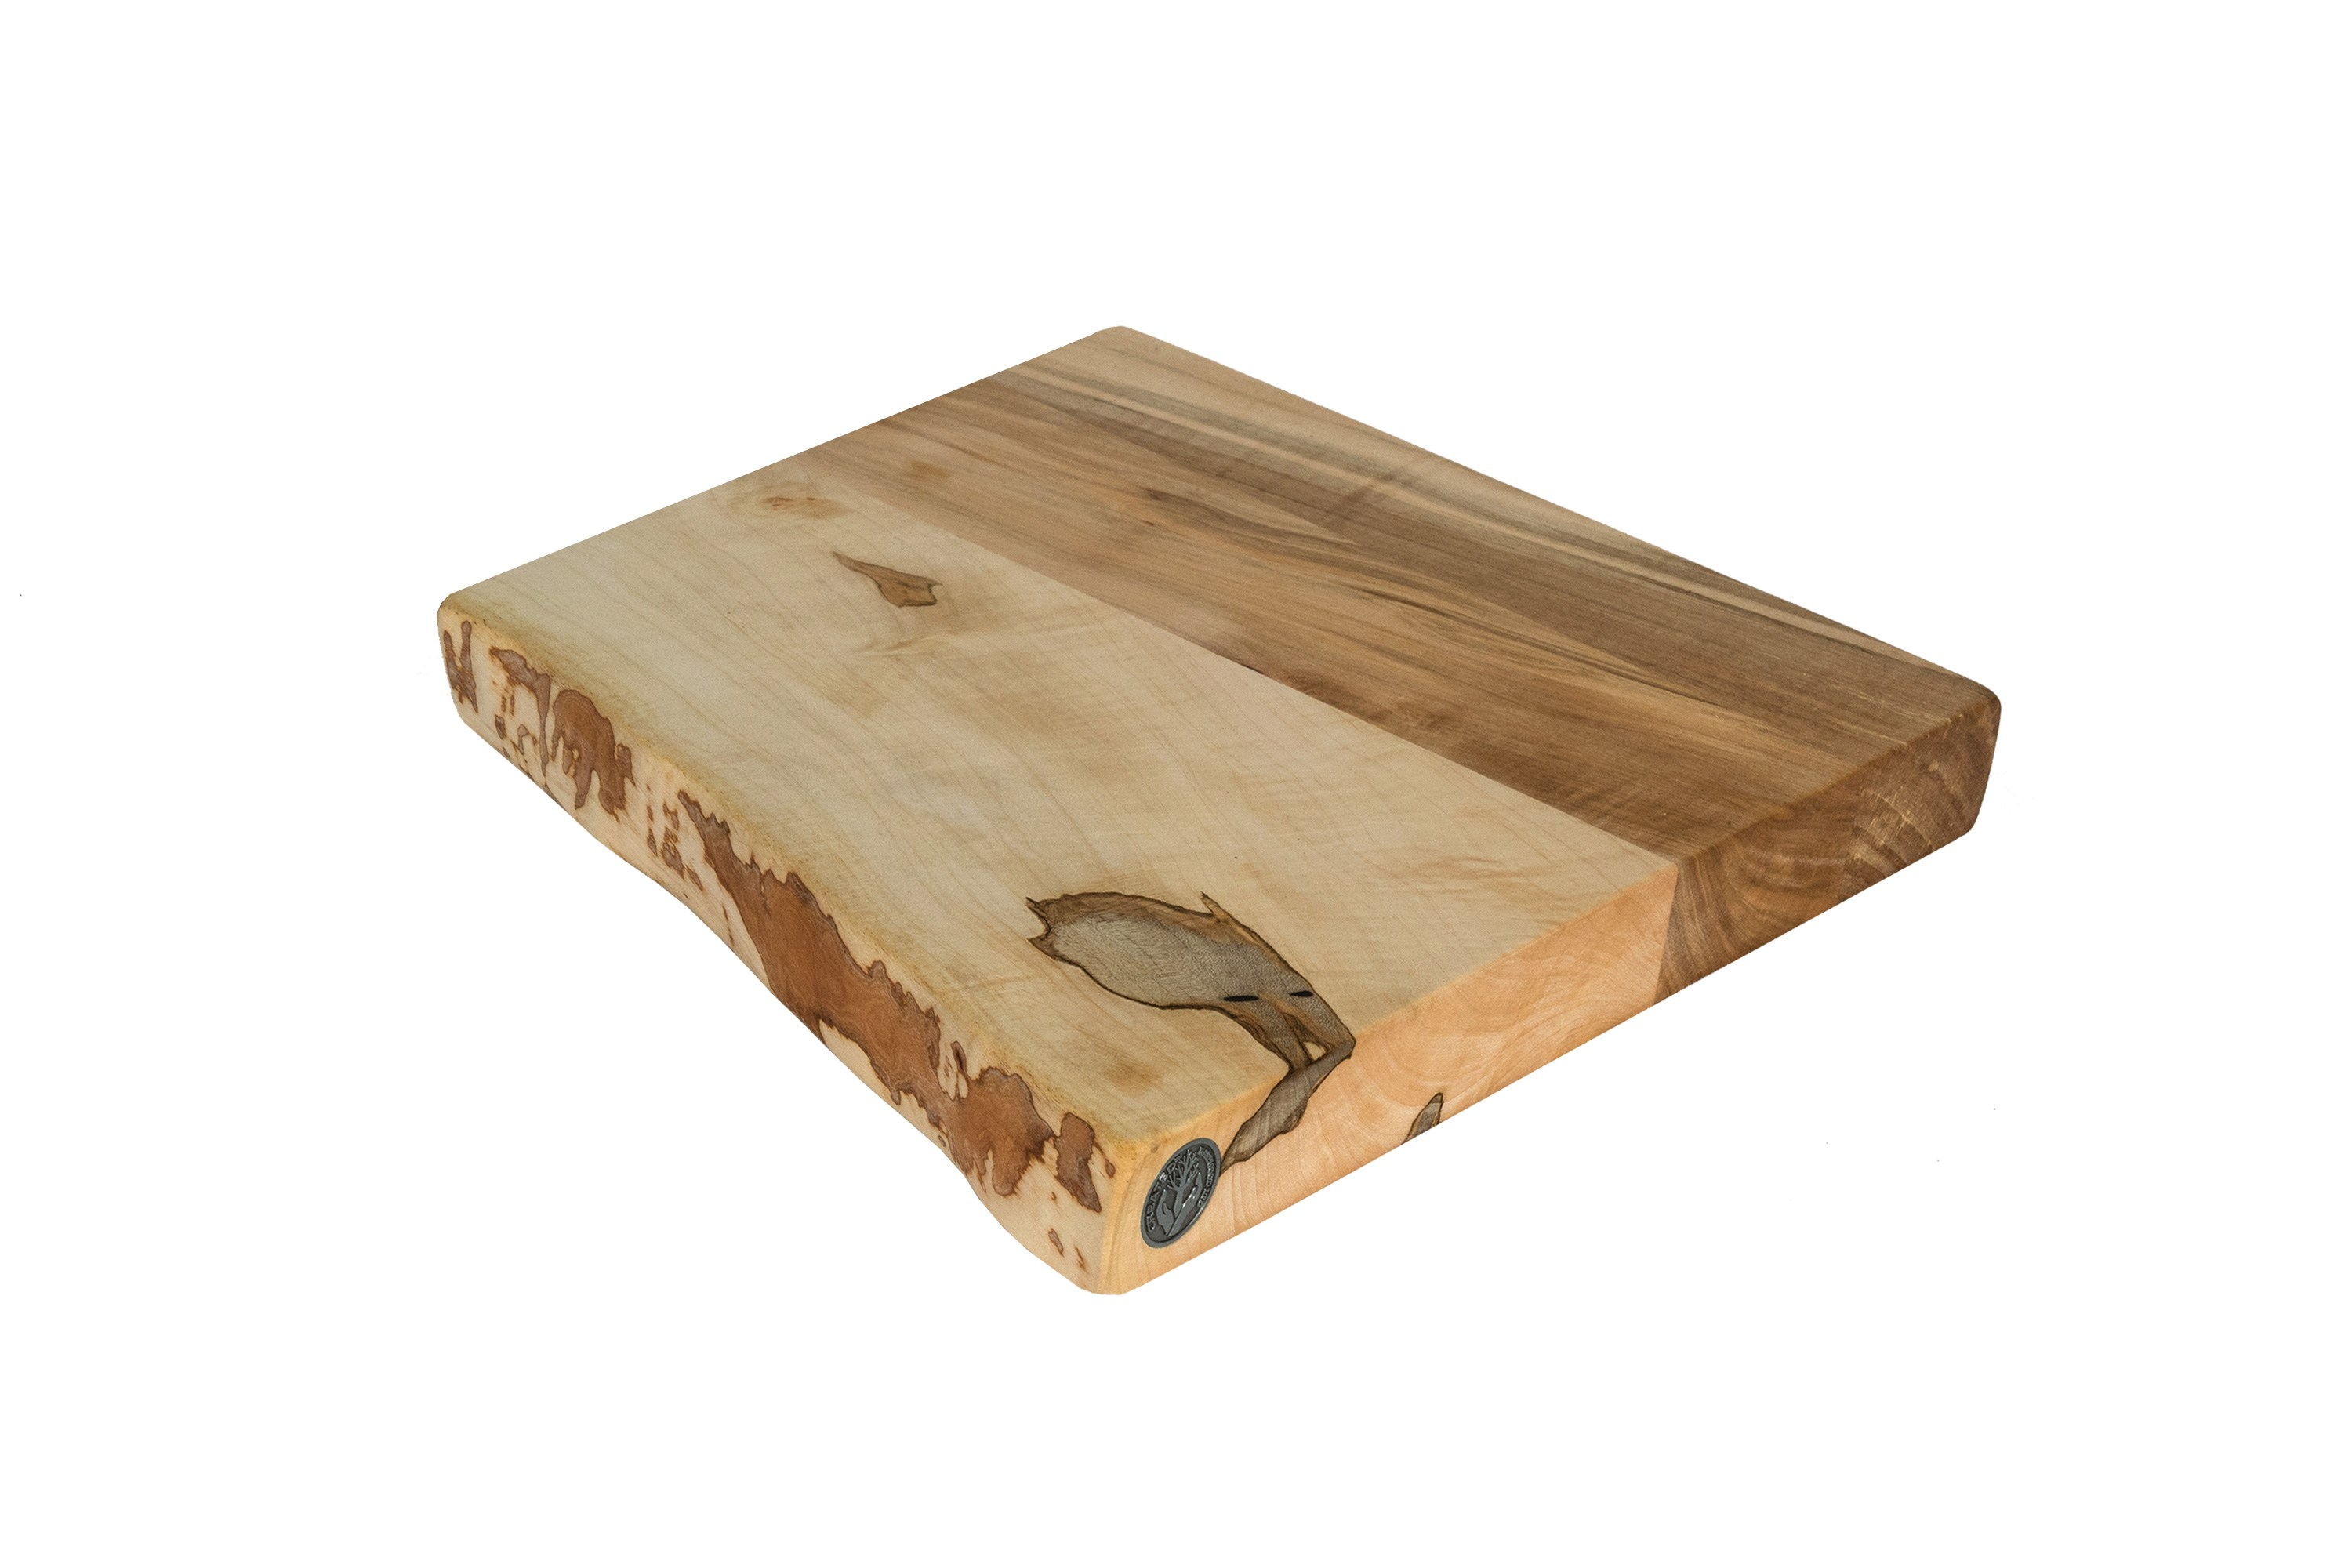 Live Edge Maple Cutting Board #072 - 10